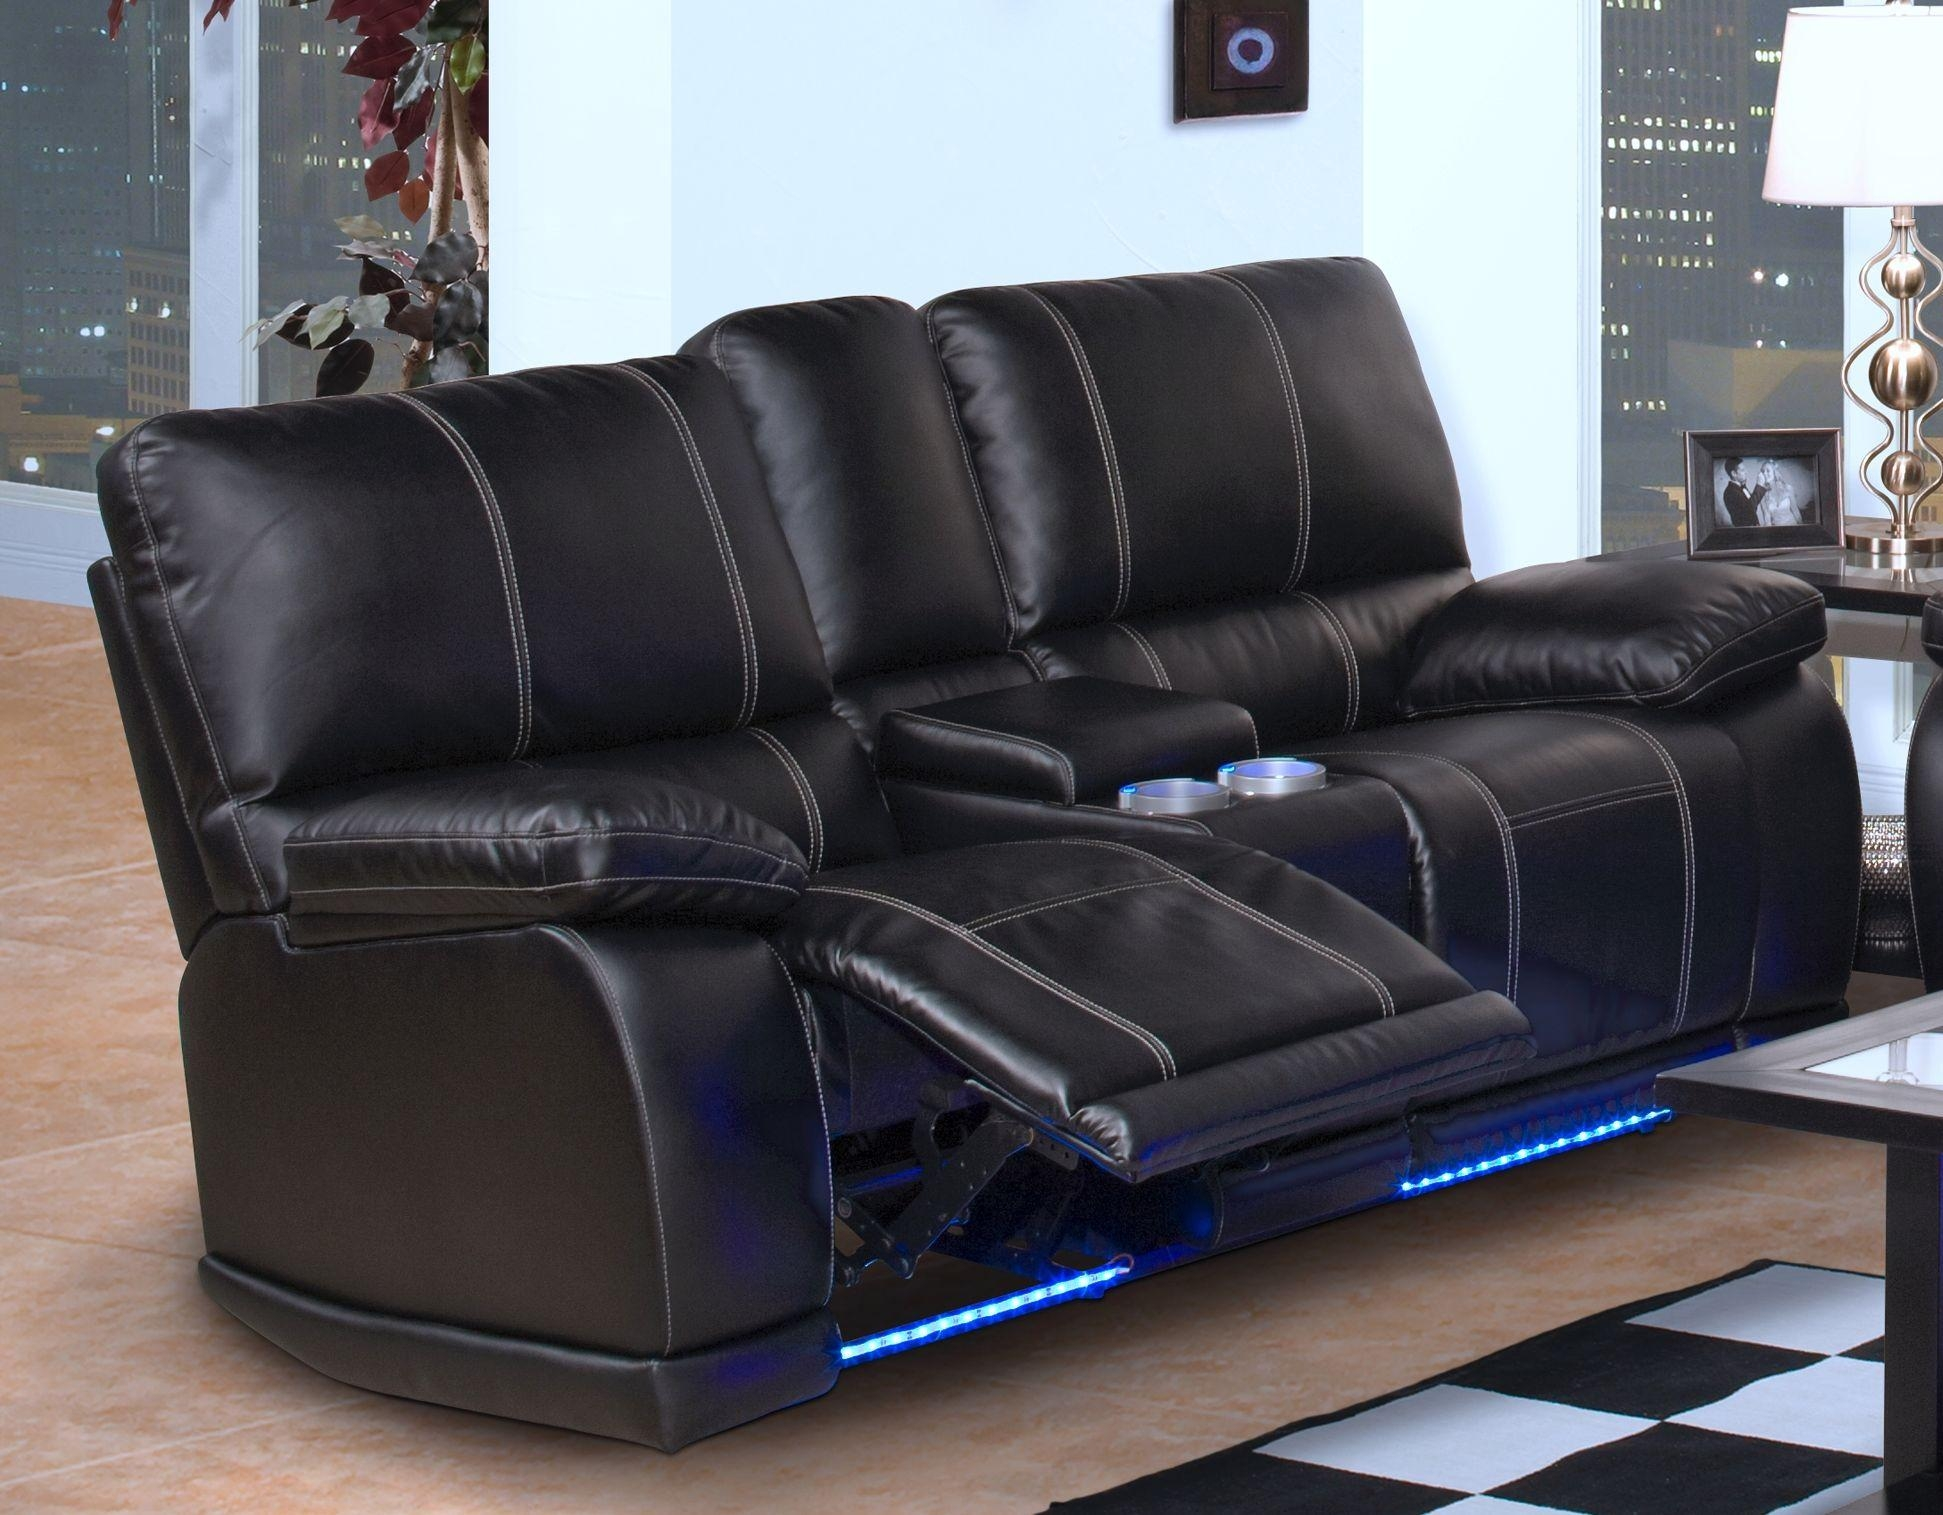 Furniture: Appealing Leather Reclining Couch For Decorating Your Within Black Leather Sofas And Loveseats (Image 16 of 20)